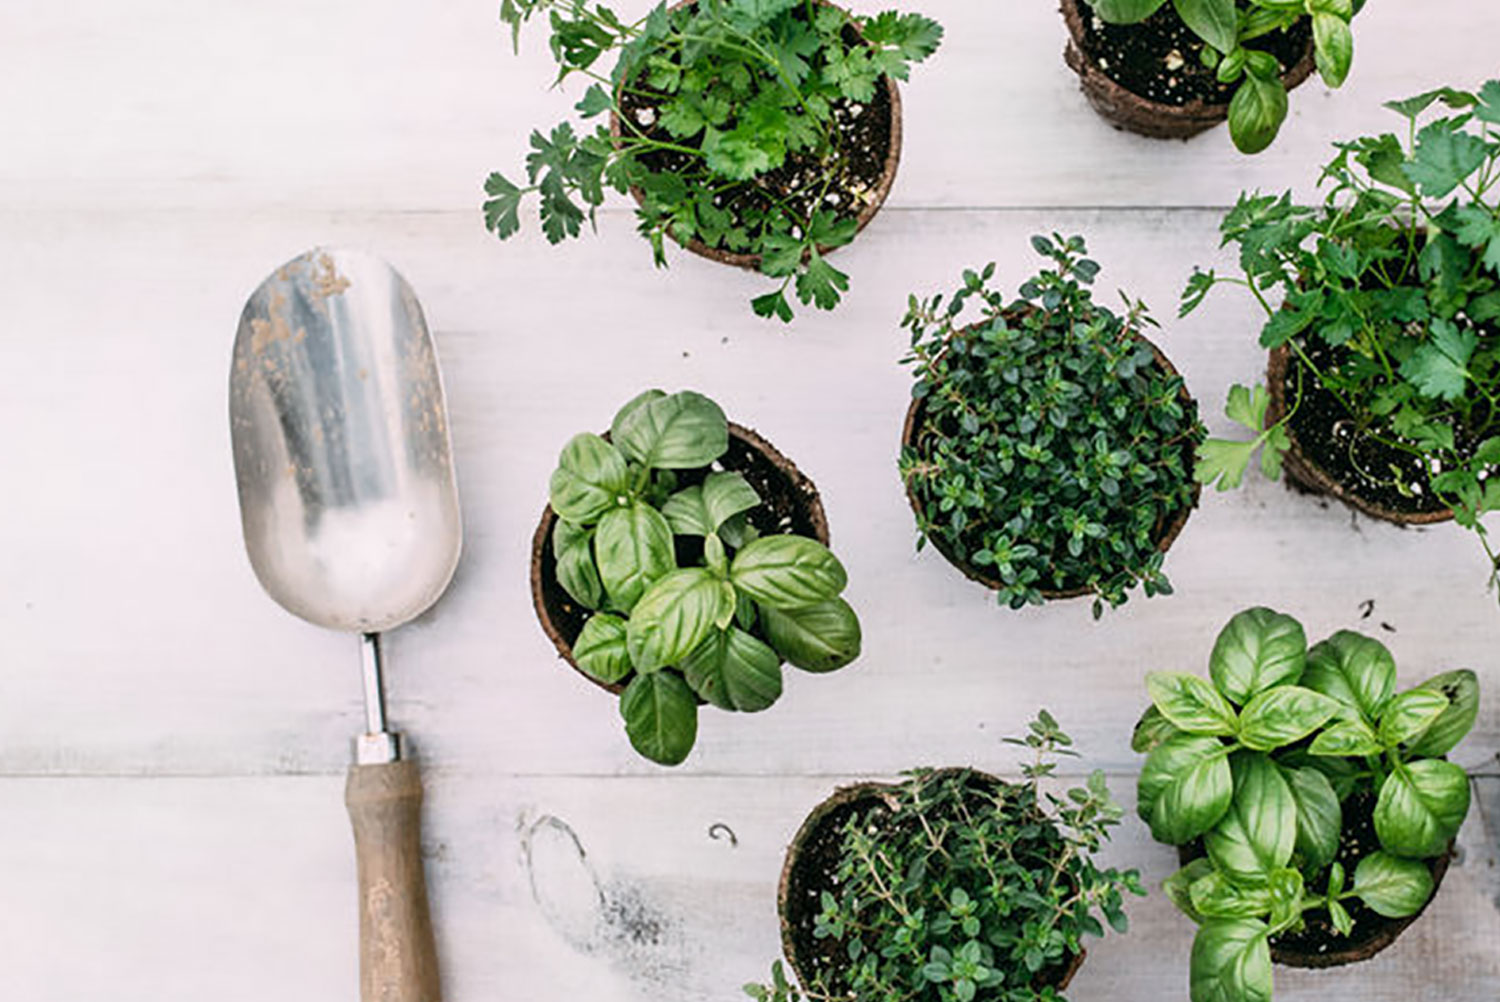 shovel on white wood with potted green plants